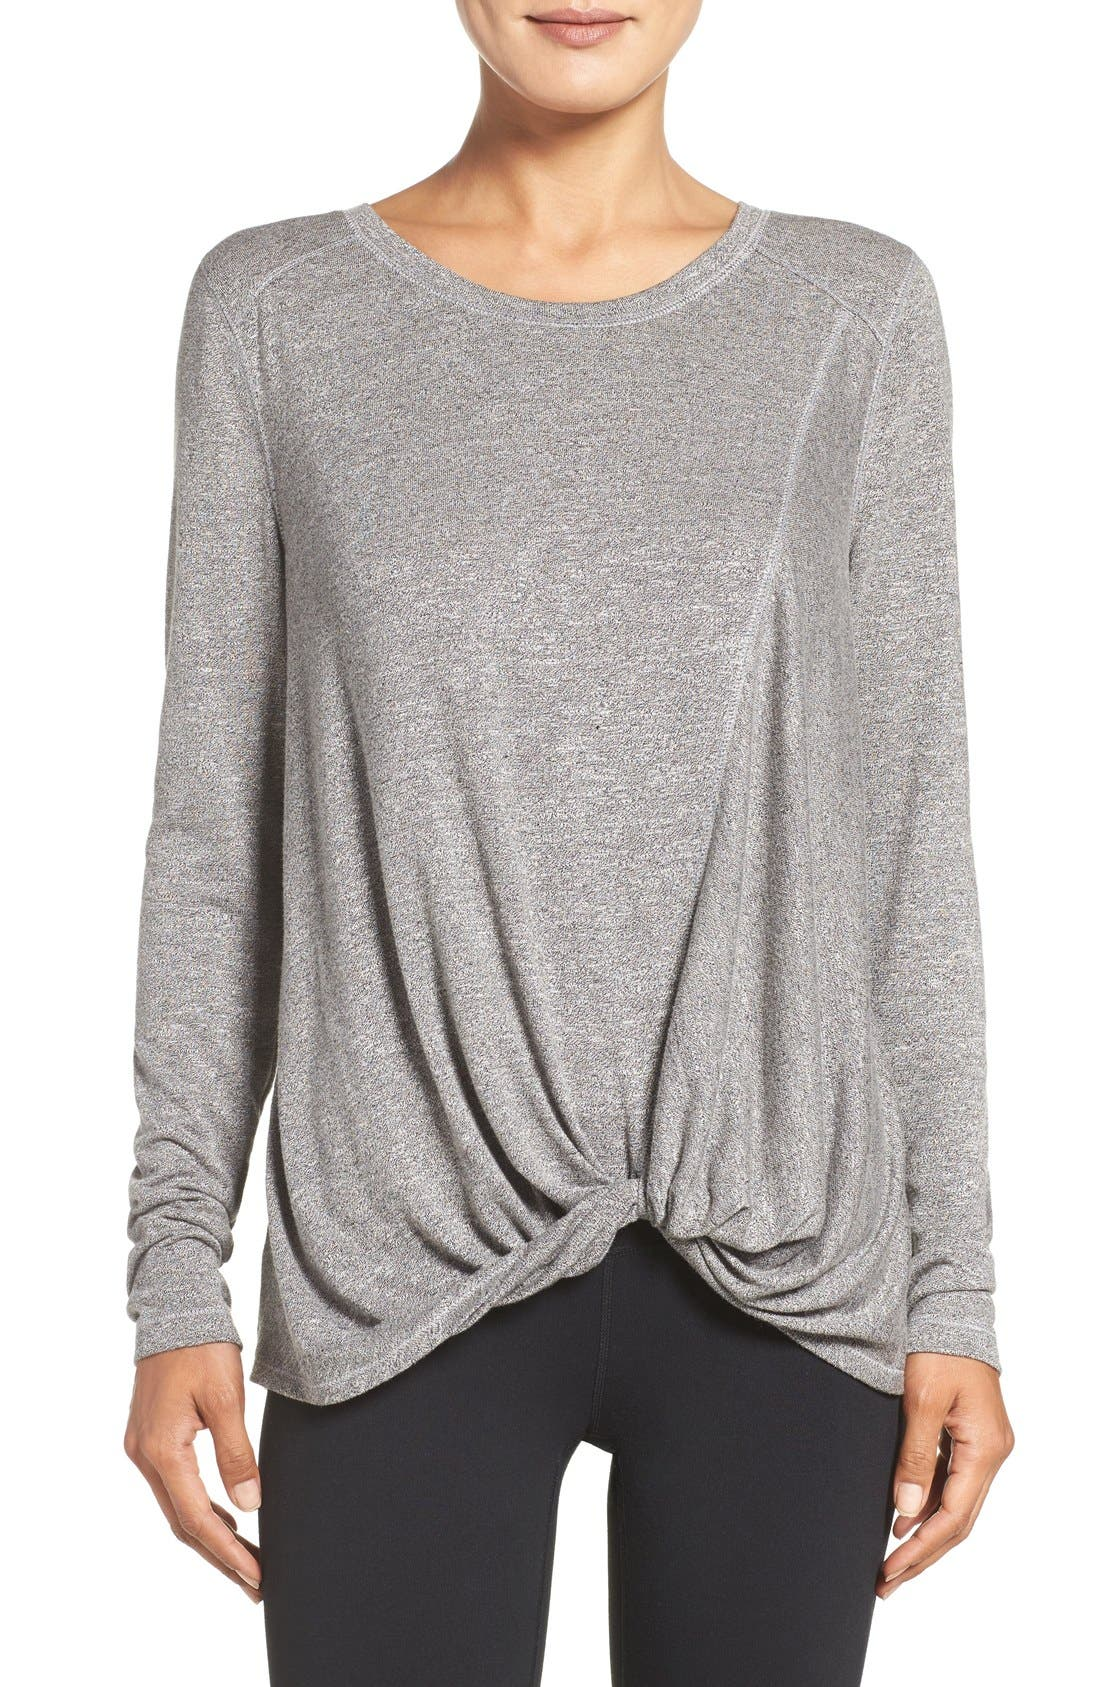 Twisty Turn Tee,                         Main,                         color, Grey Dark Heather